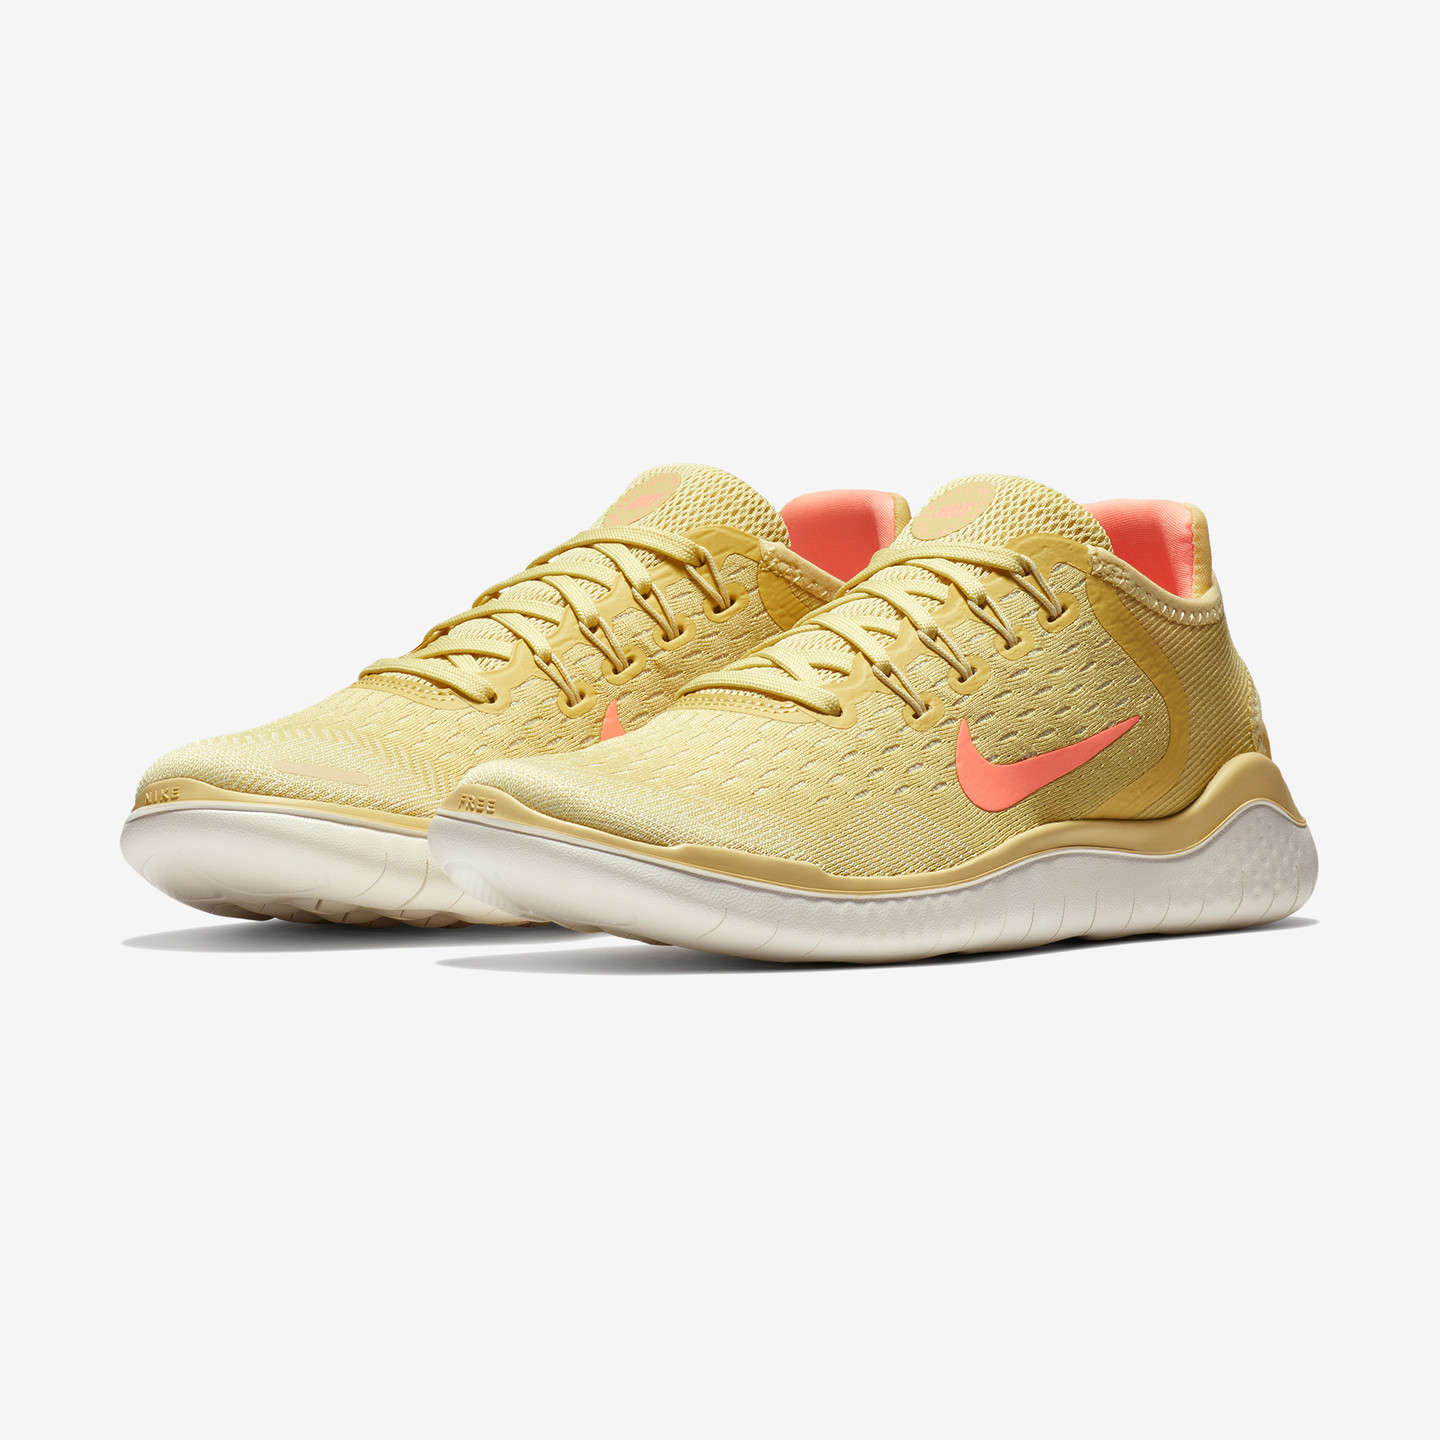 Nike Wmns Free Run 2018 Lemon Wash / Crimson Pulse AO1911-700